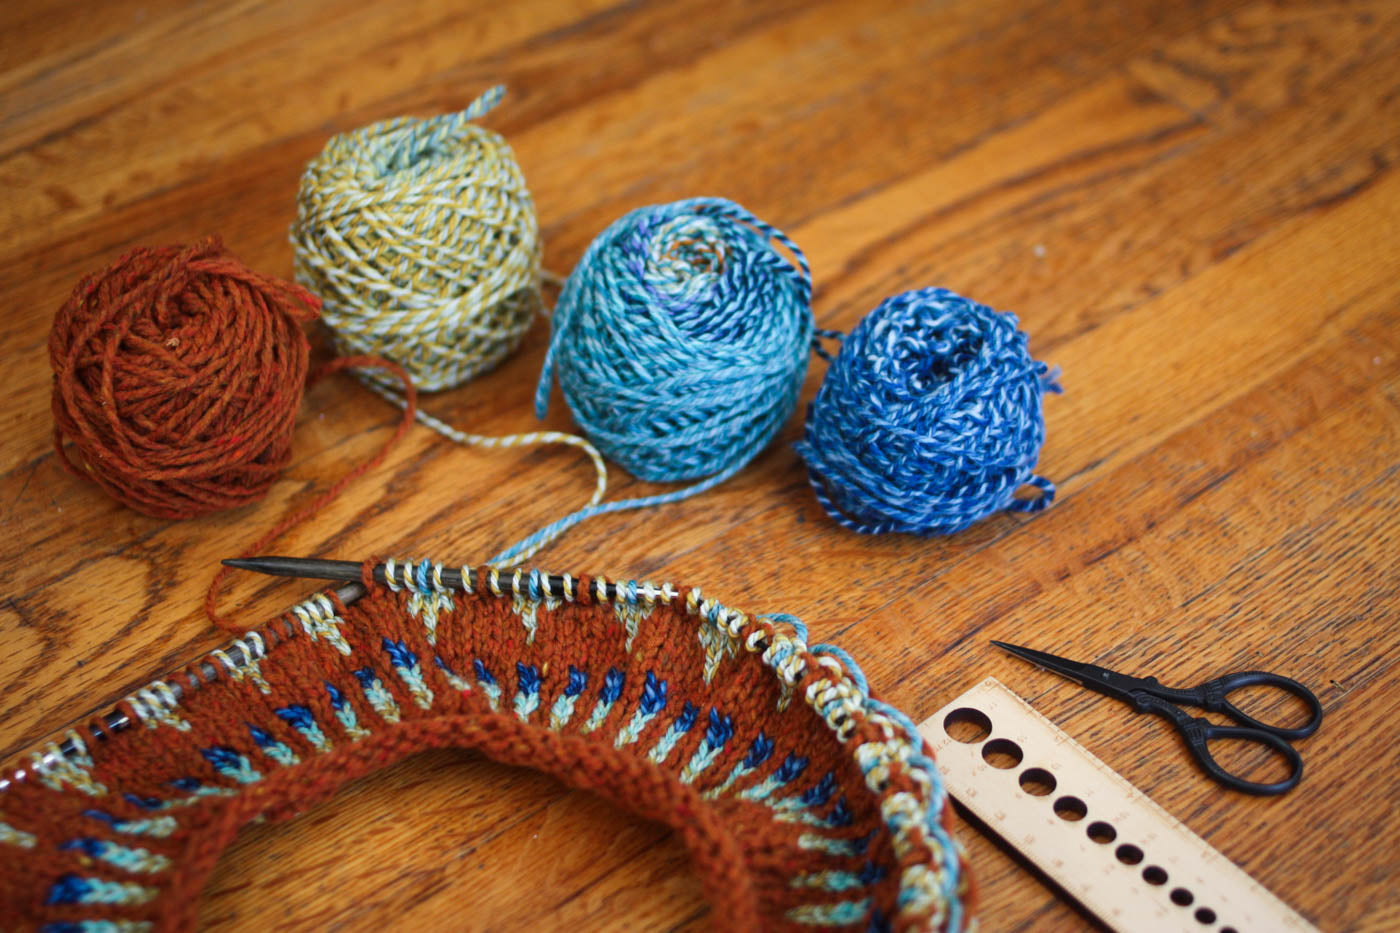 Lay flat image of a sweater being knitted in the round. Above it 4 balls of yarn, left to right: embers red, sea green, light blue and dark blue. To the right of that black scissors and a wooden knitting tool